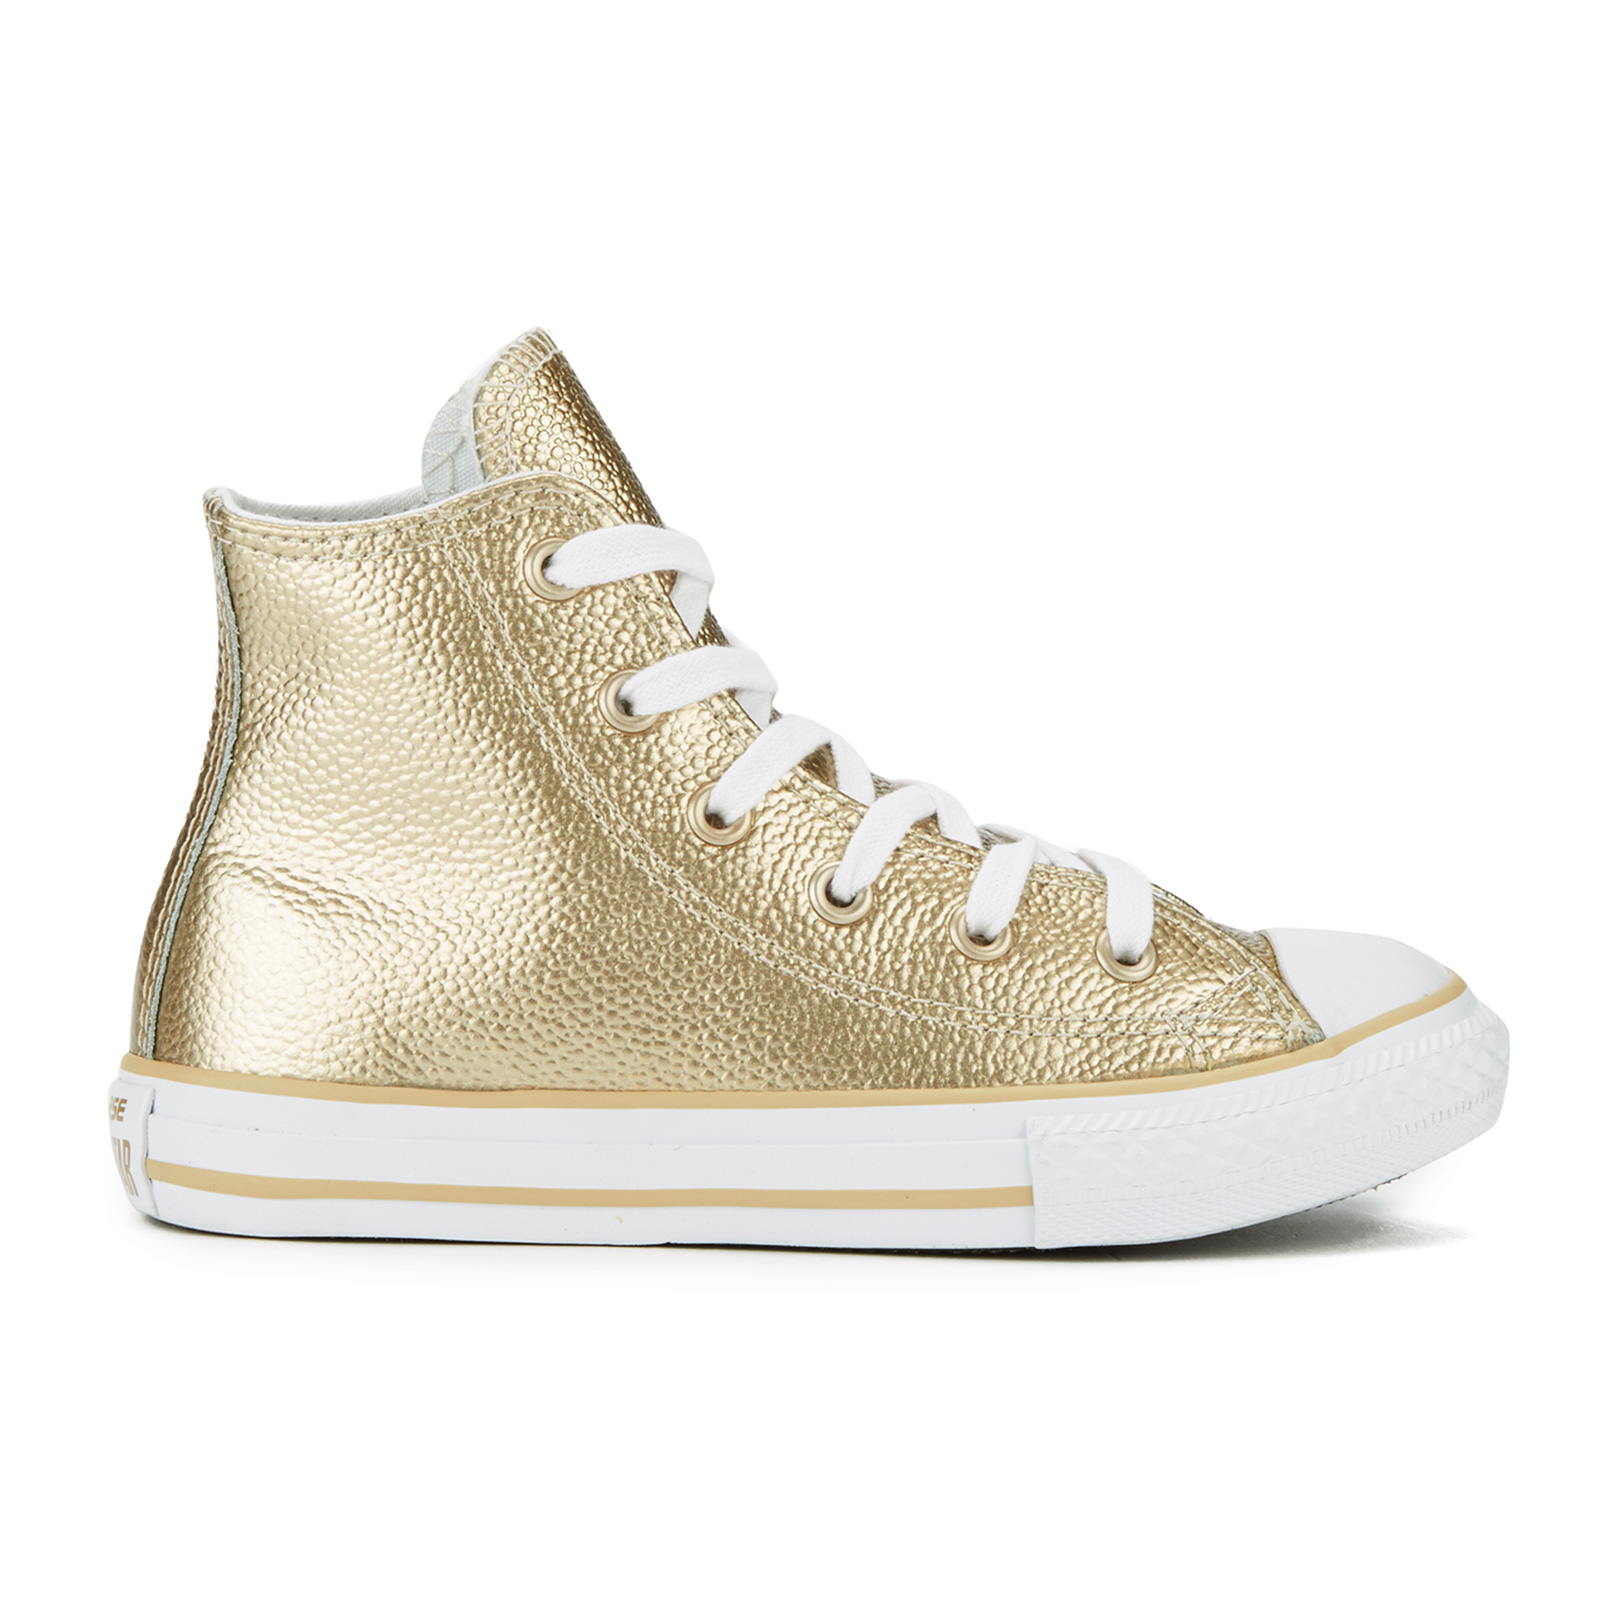 660893968d32d4 Converse Kids  Chuck Taylor All Star Metallic Leather Hi-Top ...